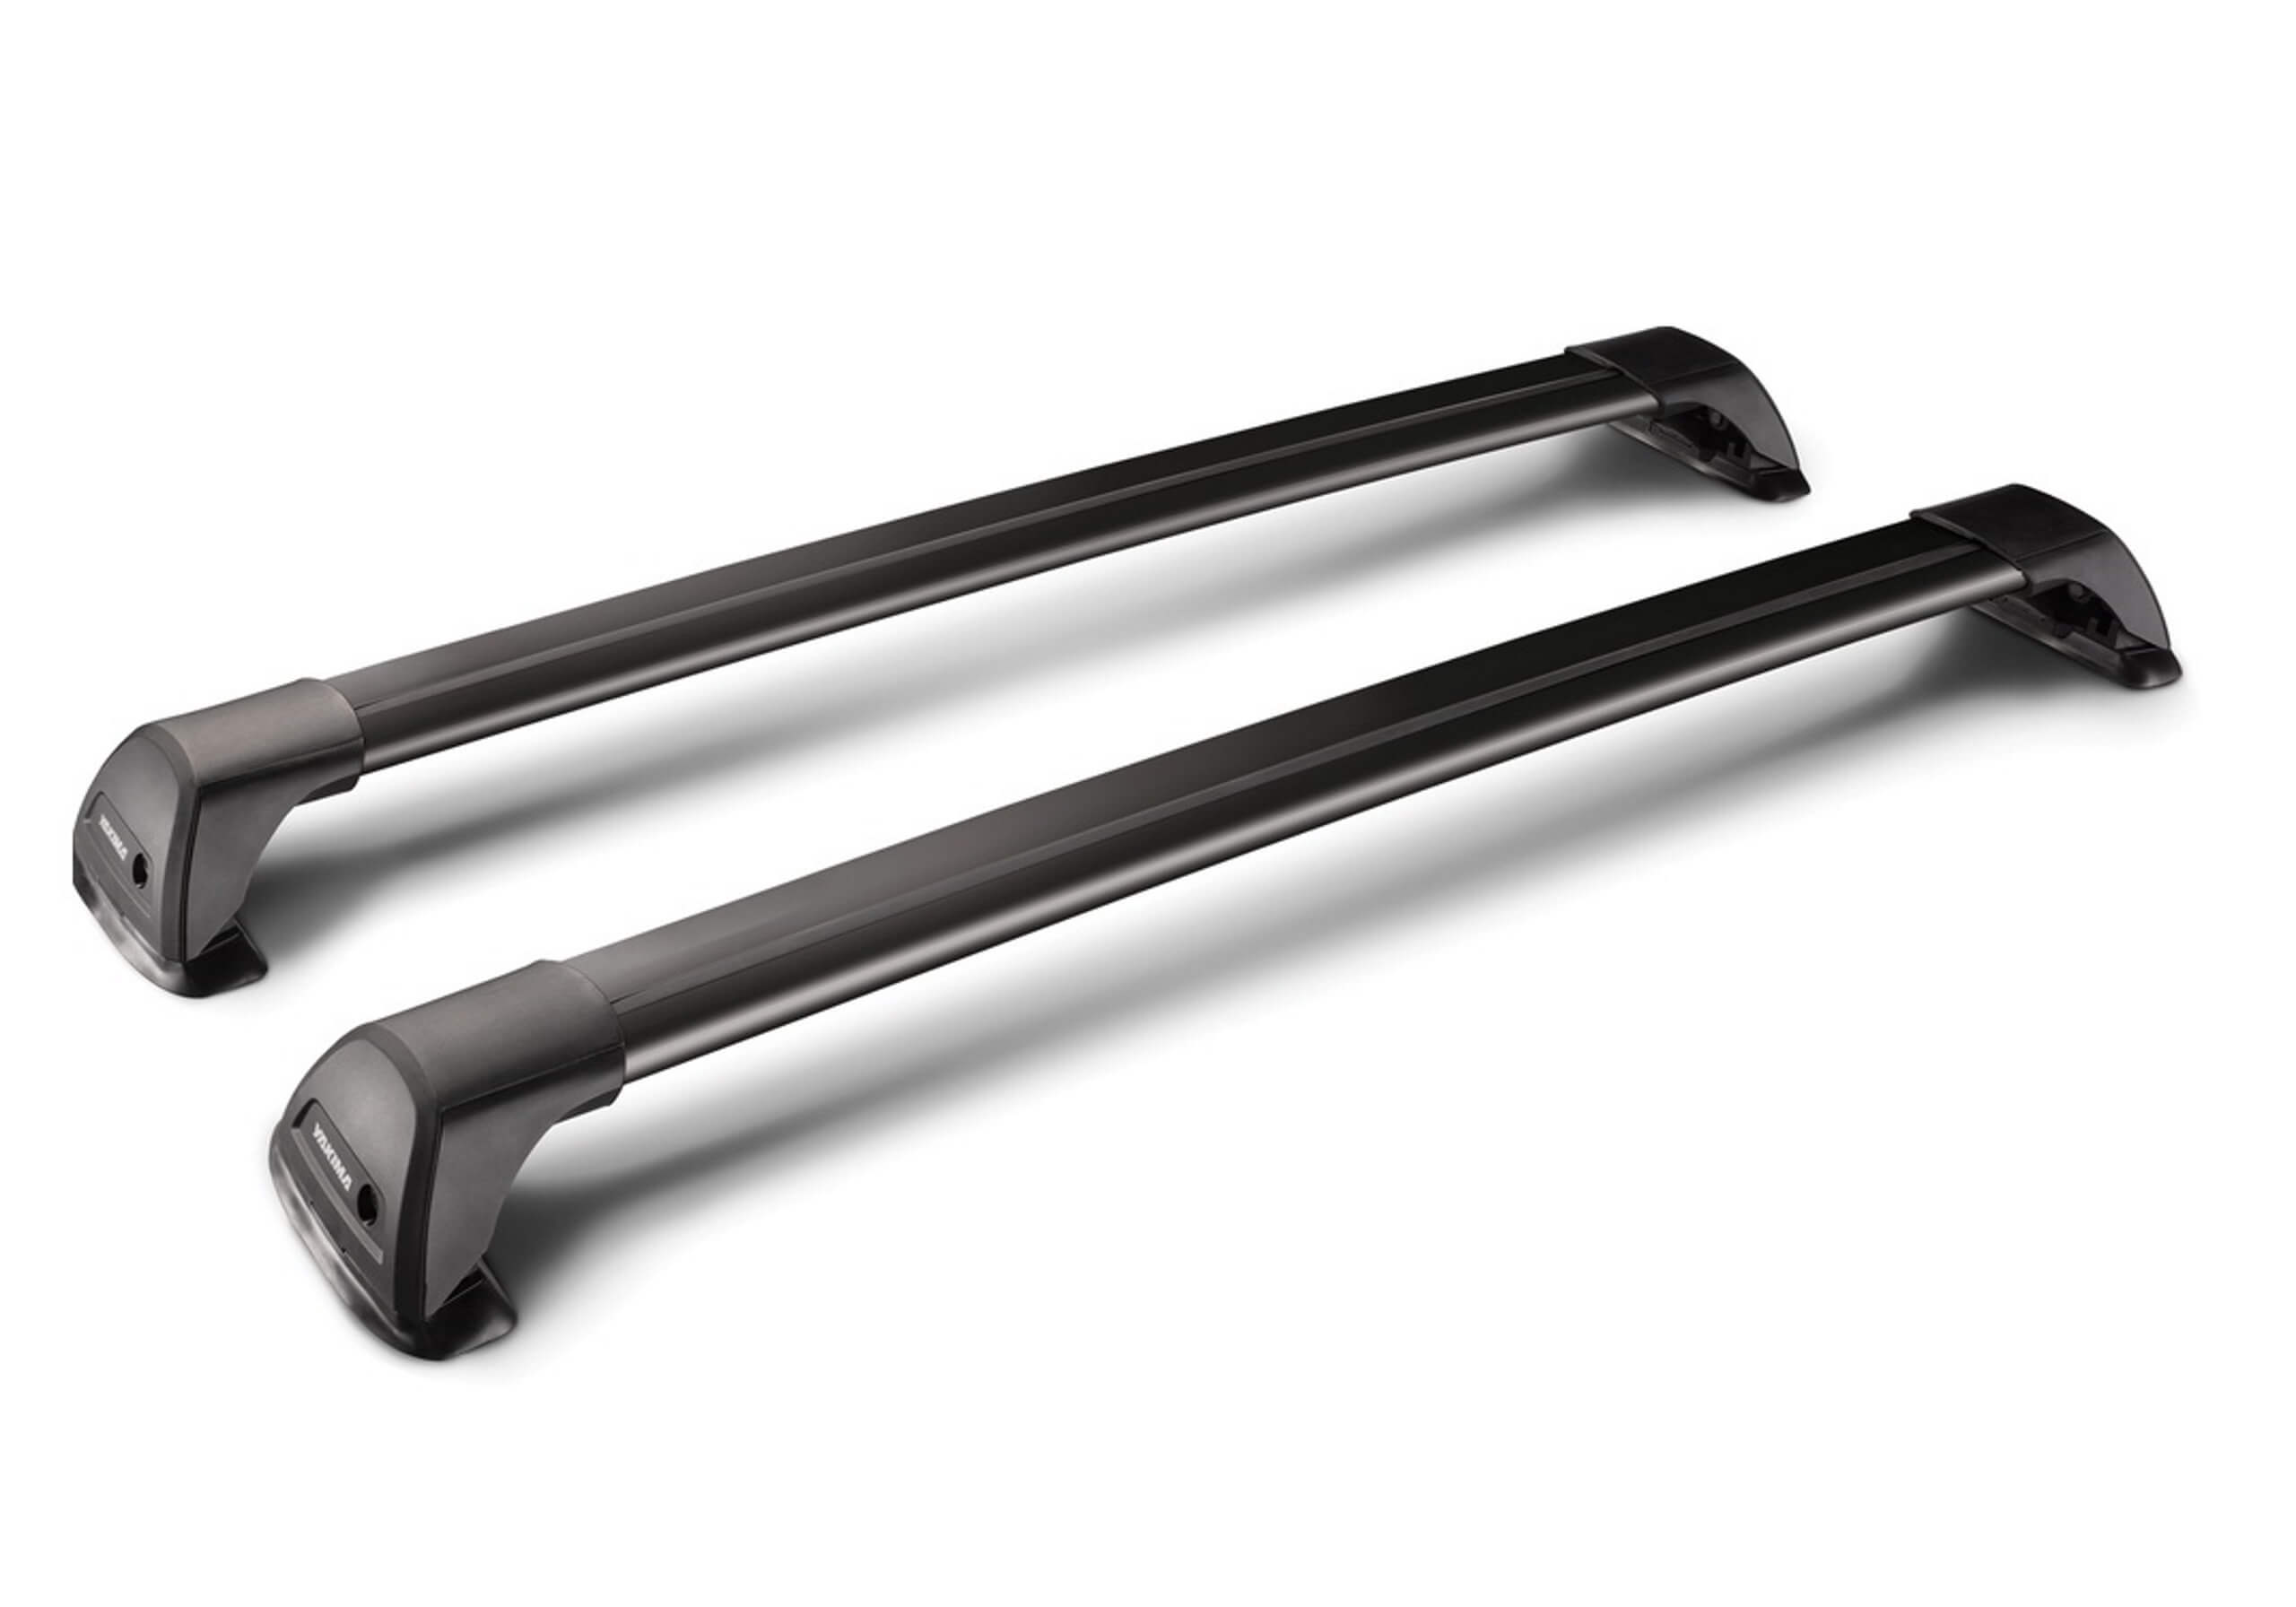 Audi A4 Avant (2005 to 2008):Yakima roof bars package - S24 black bars with K328 kit